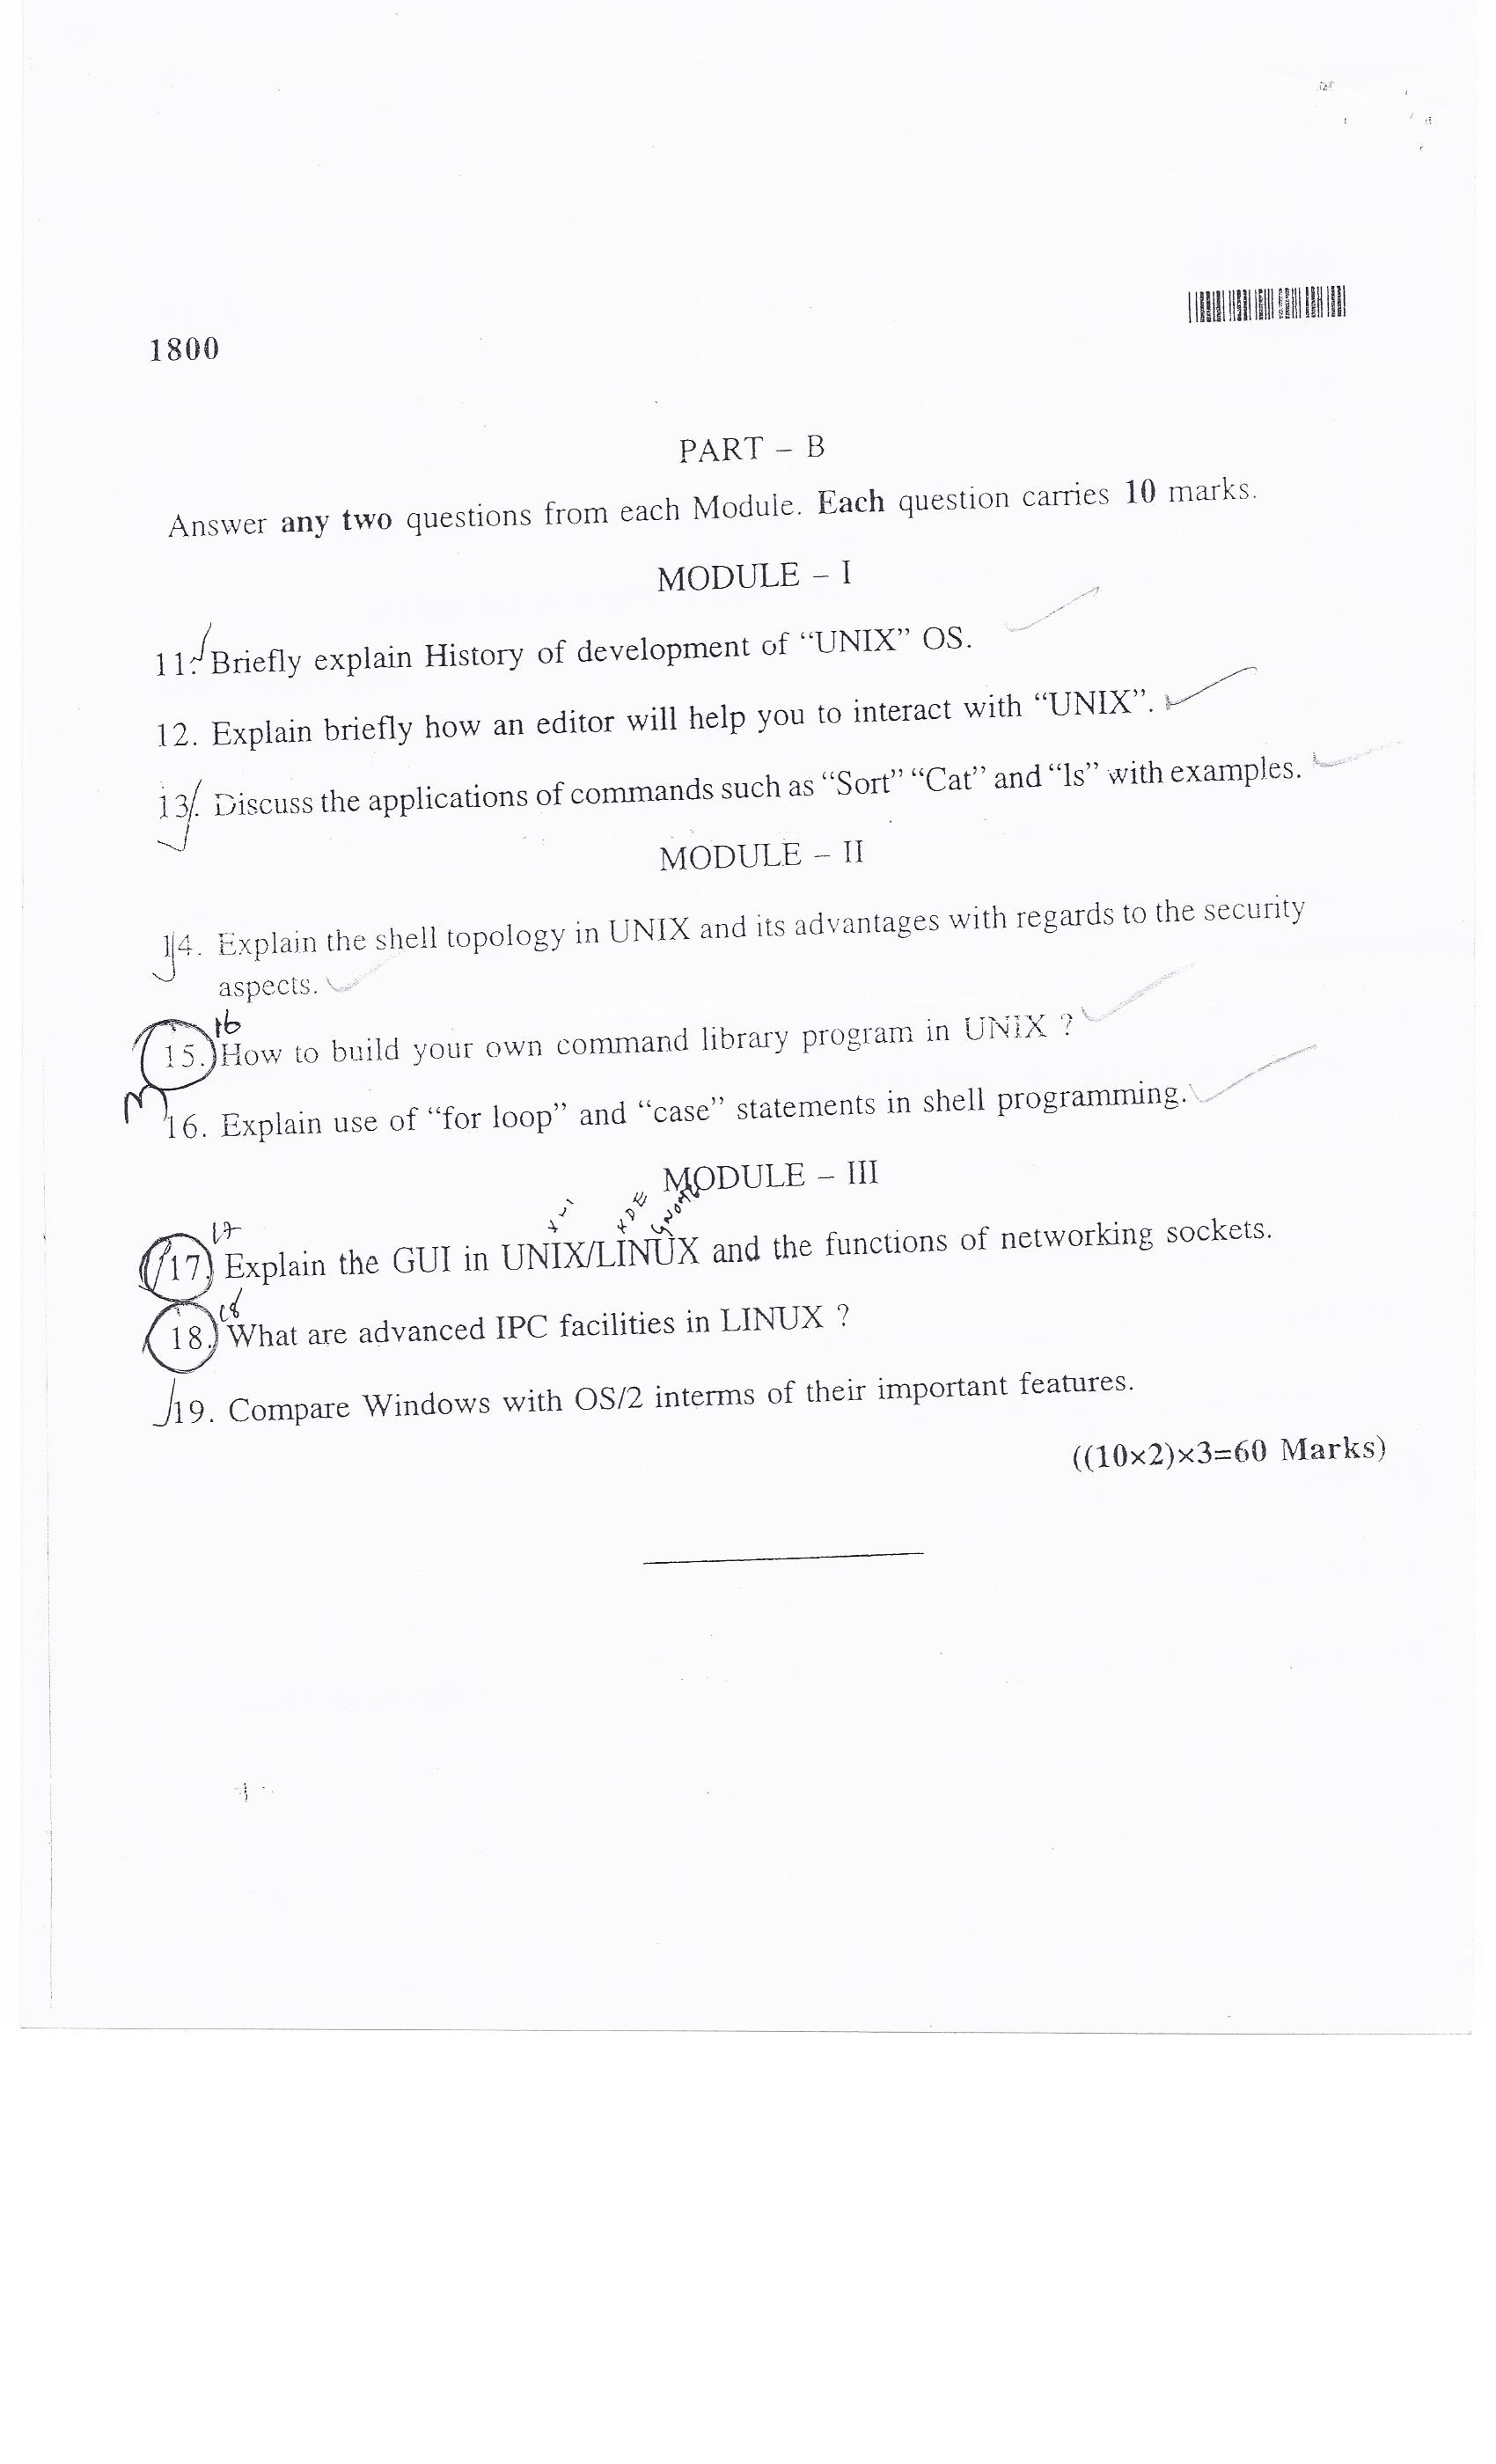 mca june 2011 exam paper Karnataka pgcet mca 2014 sample paper- candidates can download   karnataka pgcet mca was held on june 30, 2014 in paper pencil format  free  the karnataka pgcet mca 2011 question booklet and answer key.